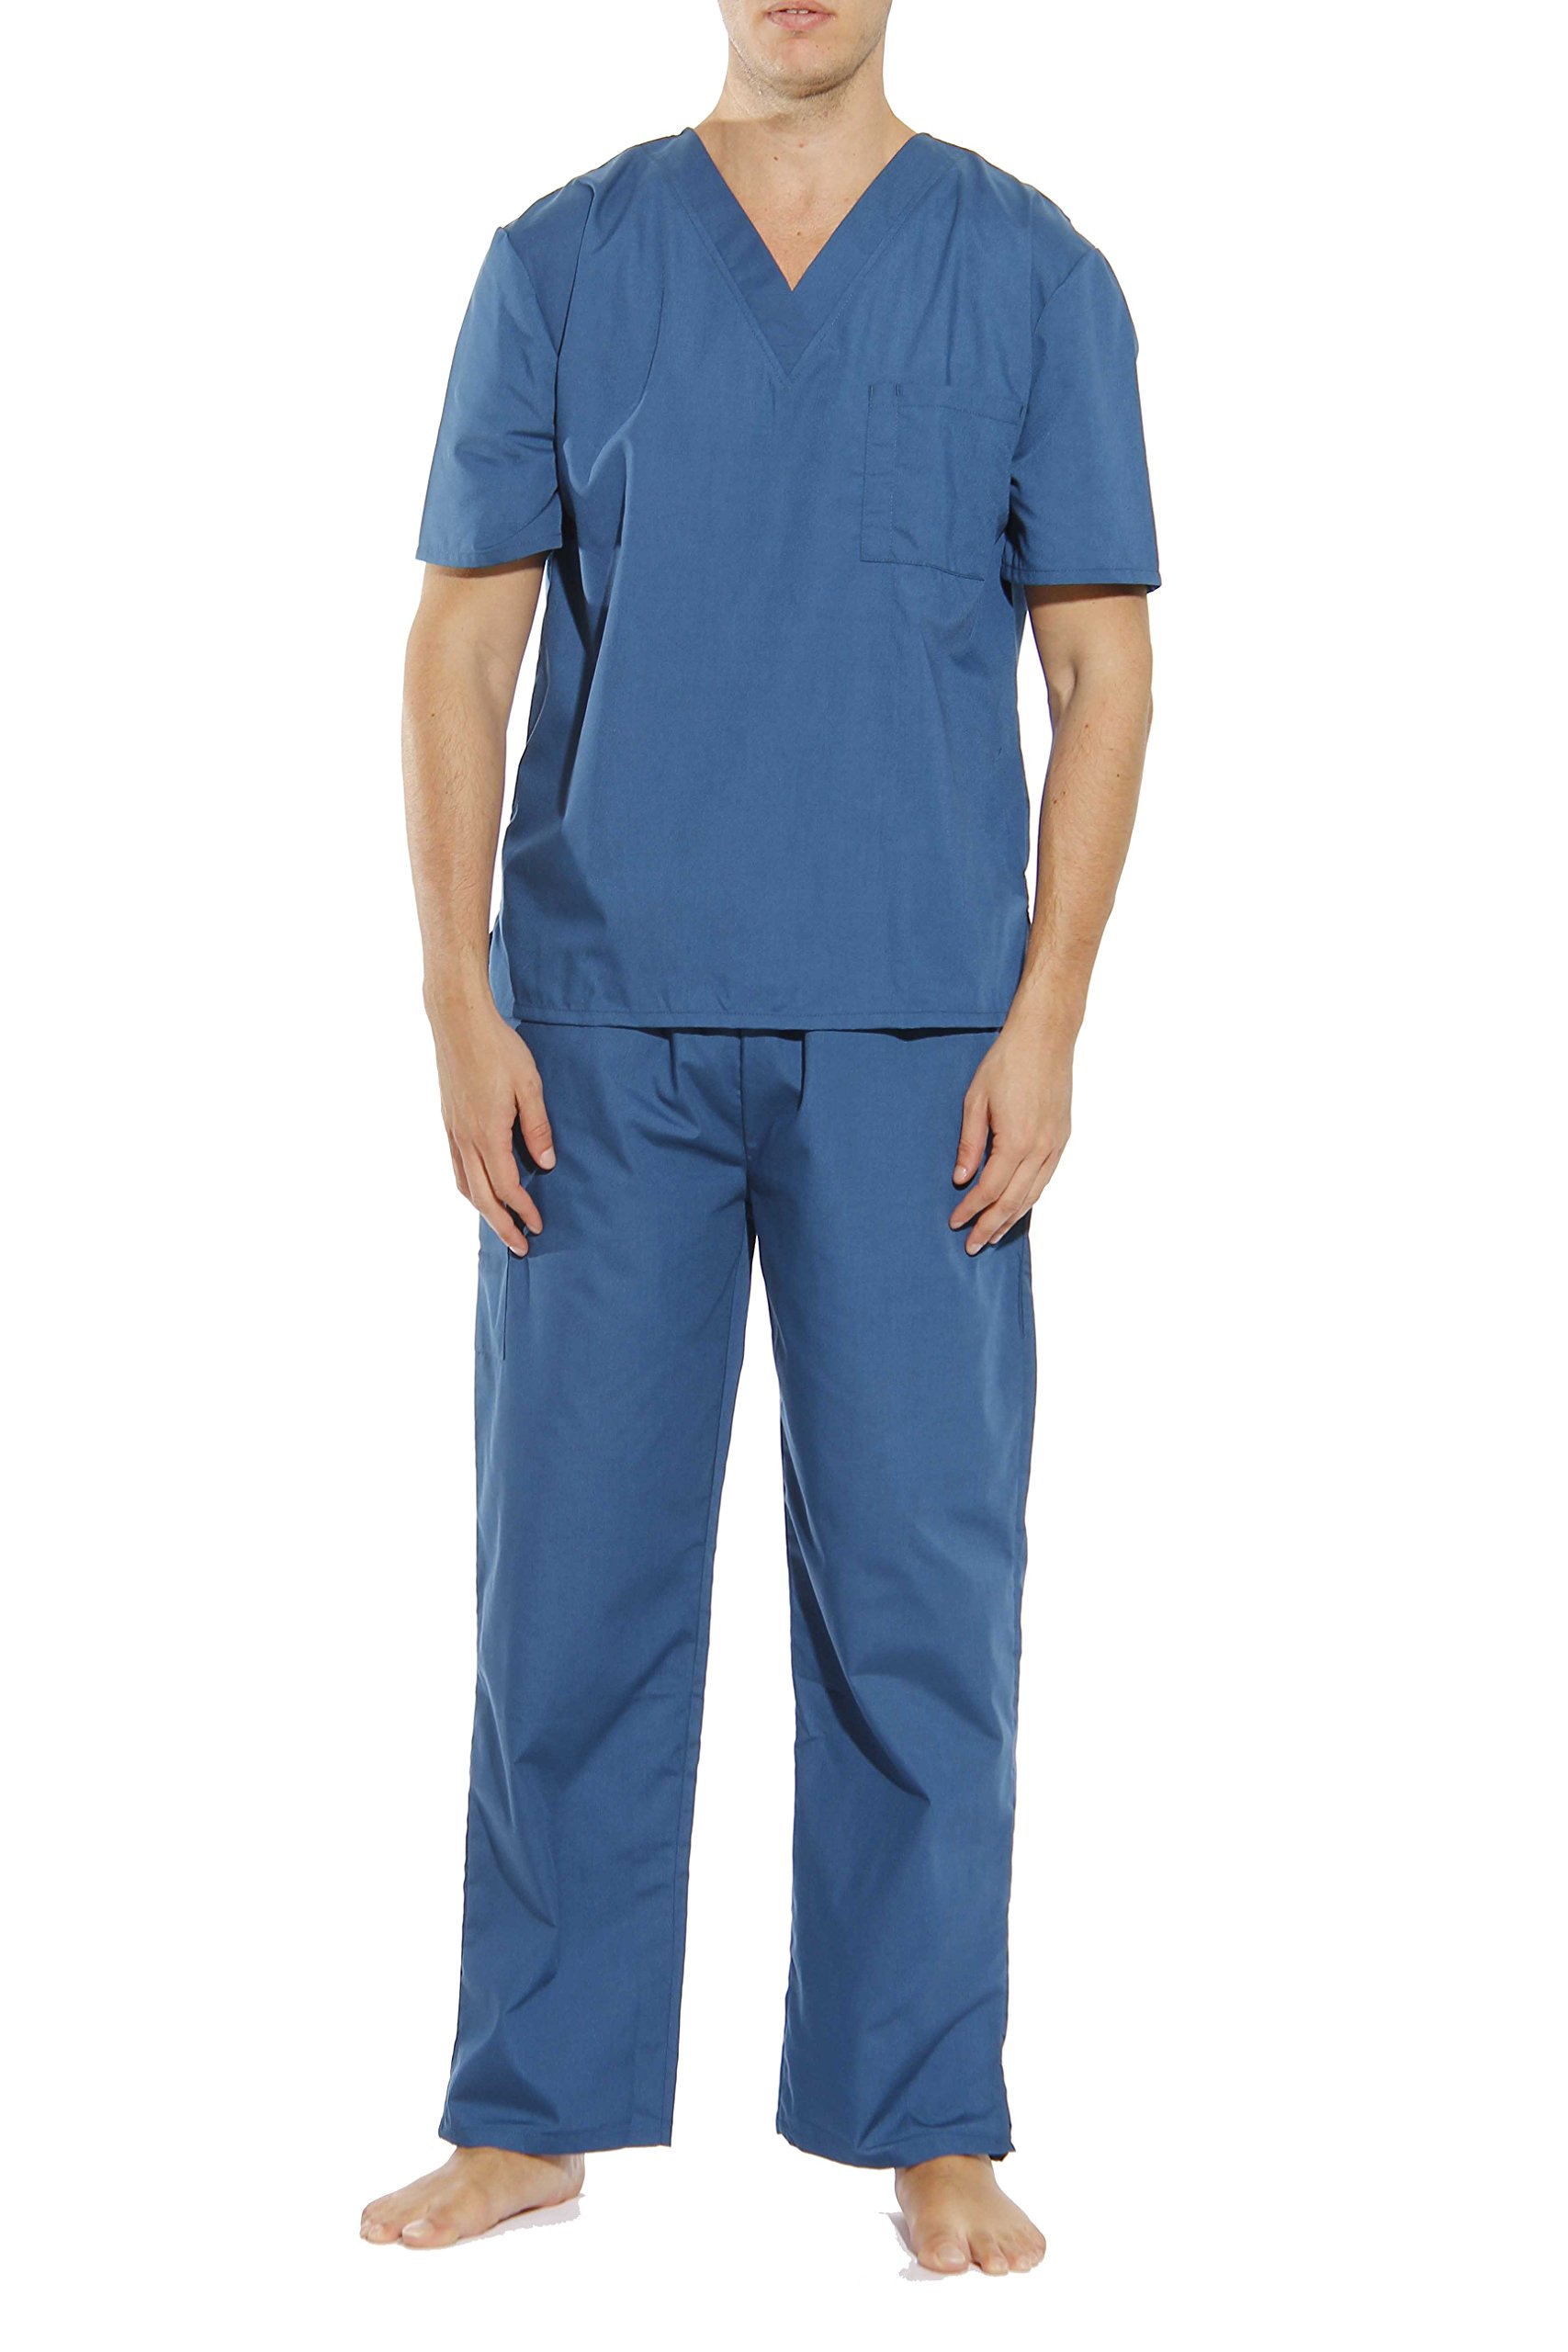 33000M-Carribean Blue-M Tropi Unisex Scrub Sets / Medical Scrubs / Nursing Scrubs